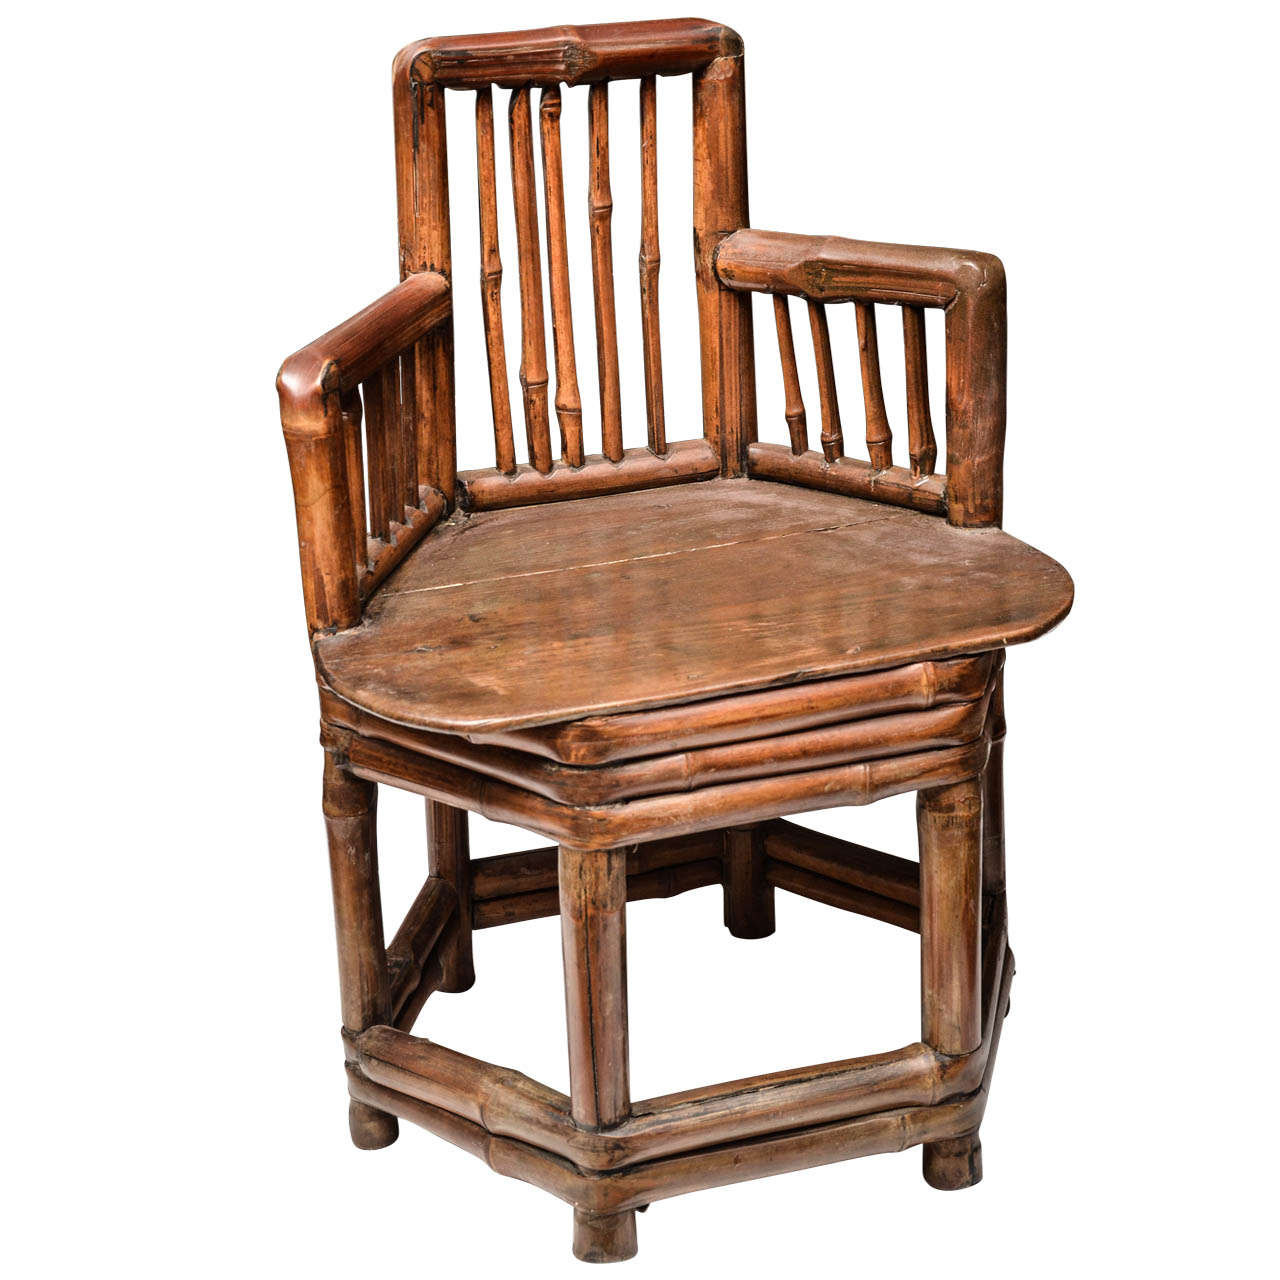 Mid-Late 19th Century Q'ing Dynasty Ningbo Bamboo Child's Chair with Elm Seat